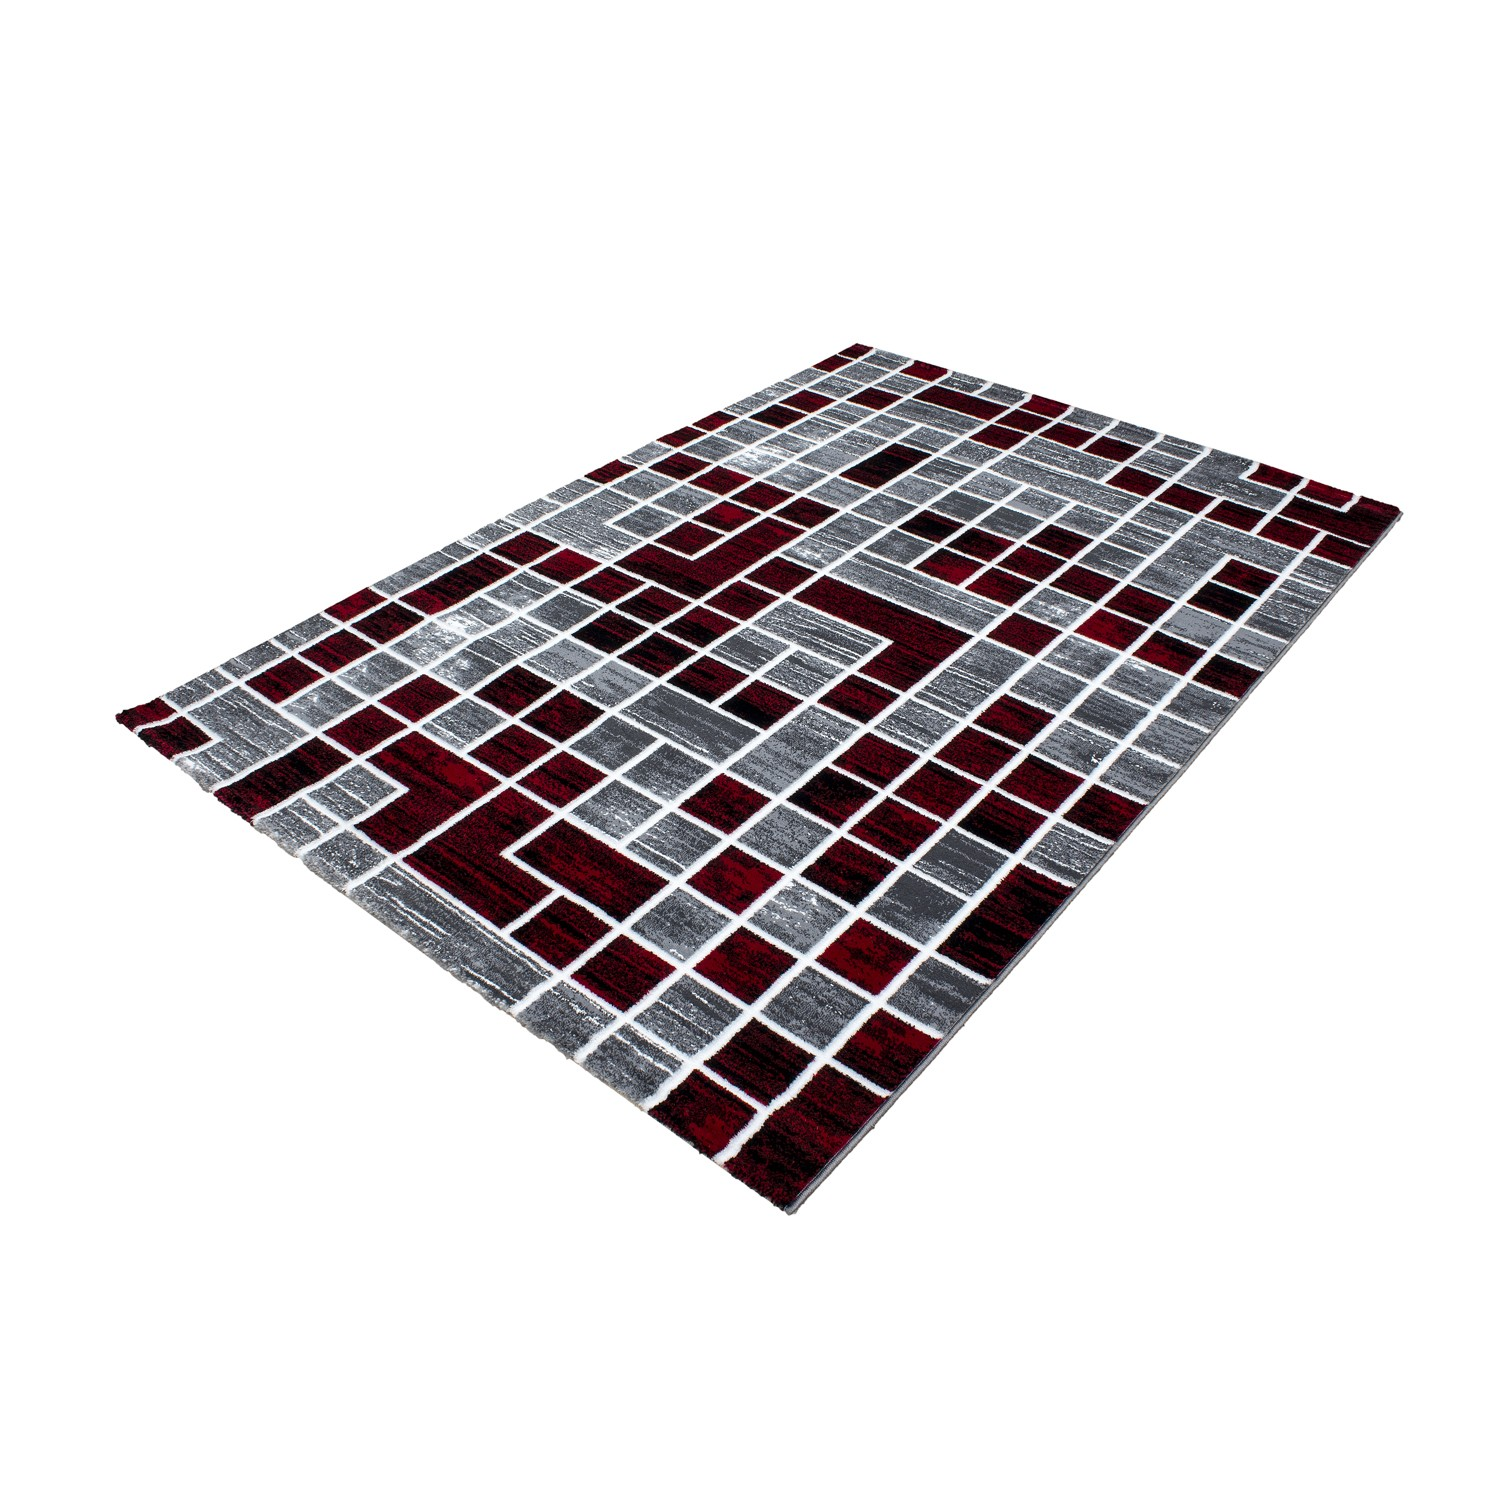 Tapis de salon en polypropyl ne rouge neo pas cher for Tapis salon colore pas cher